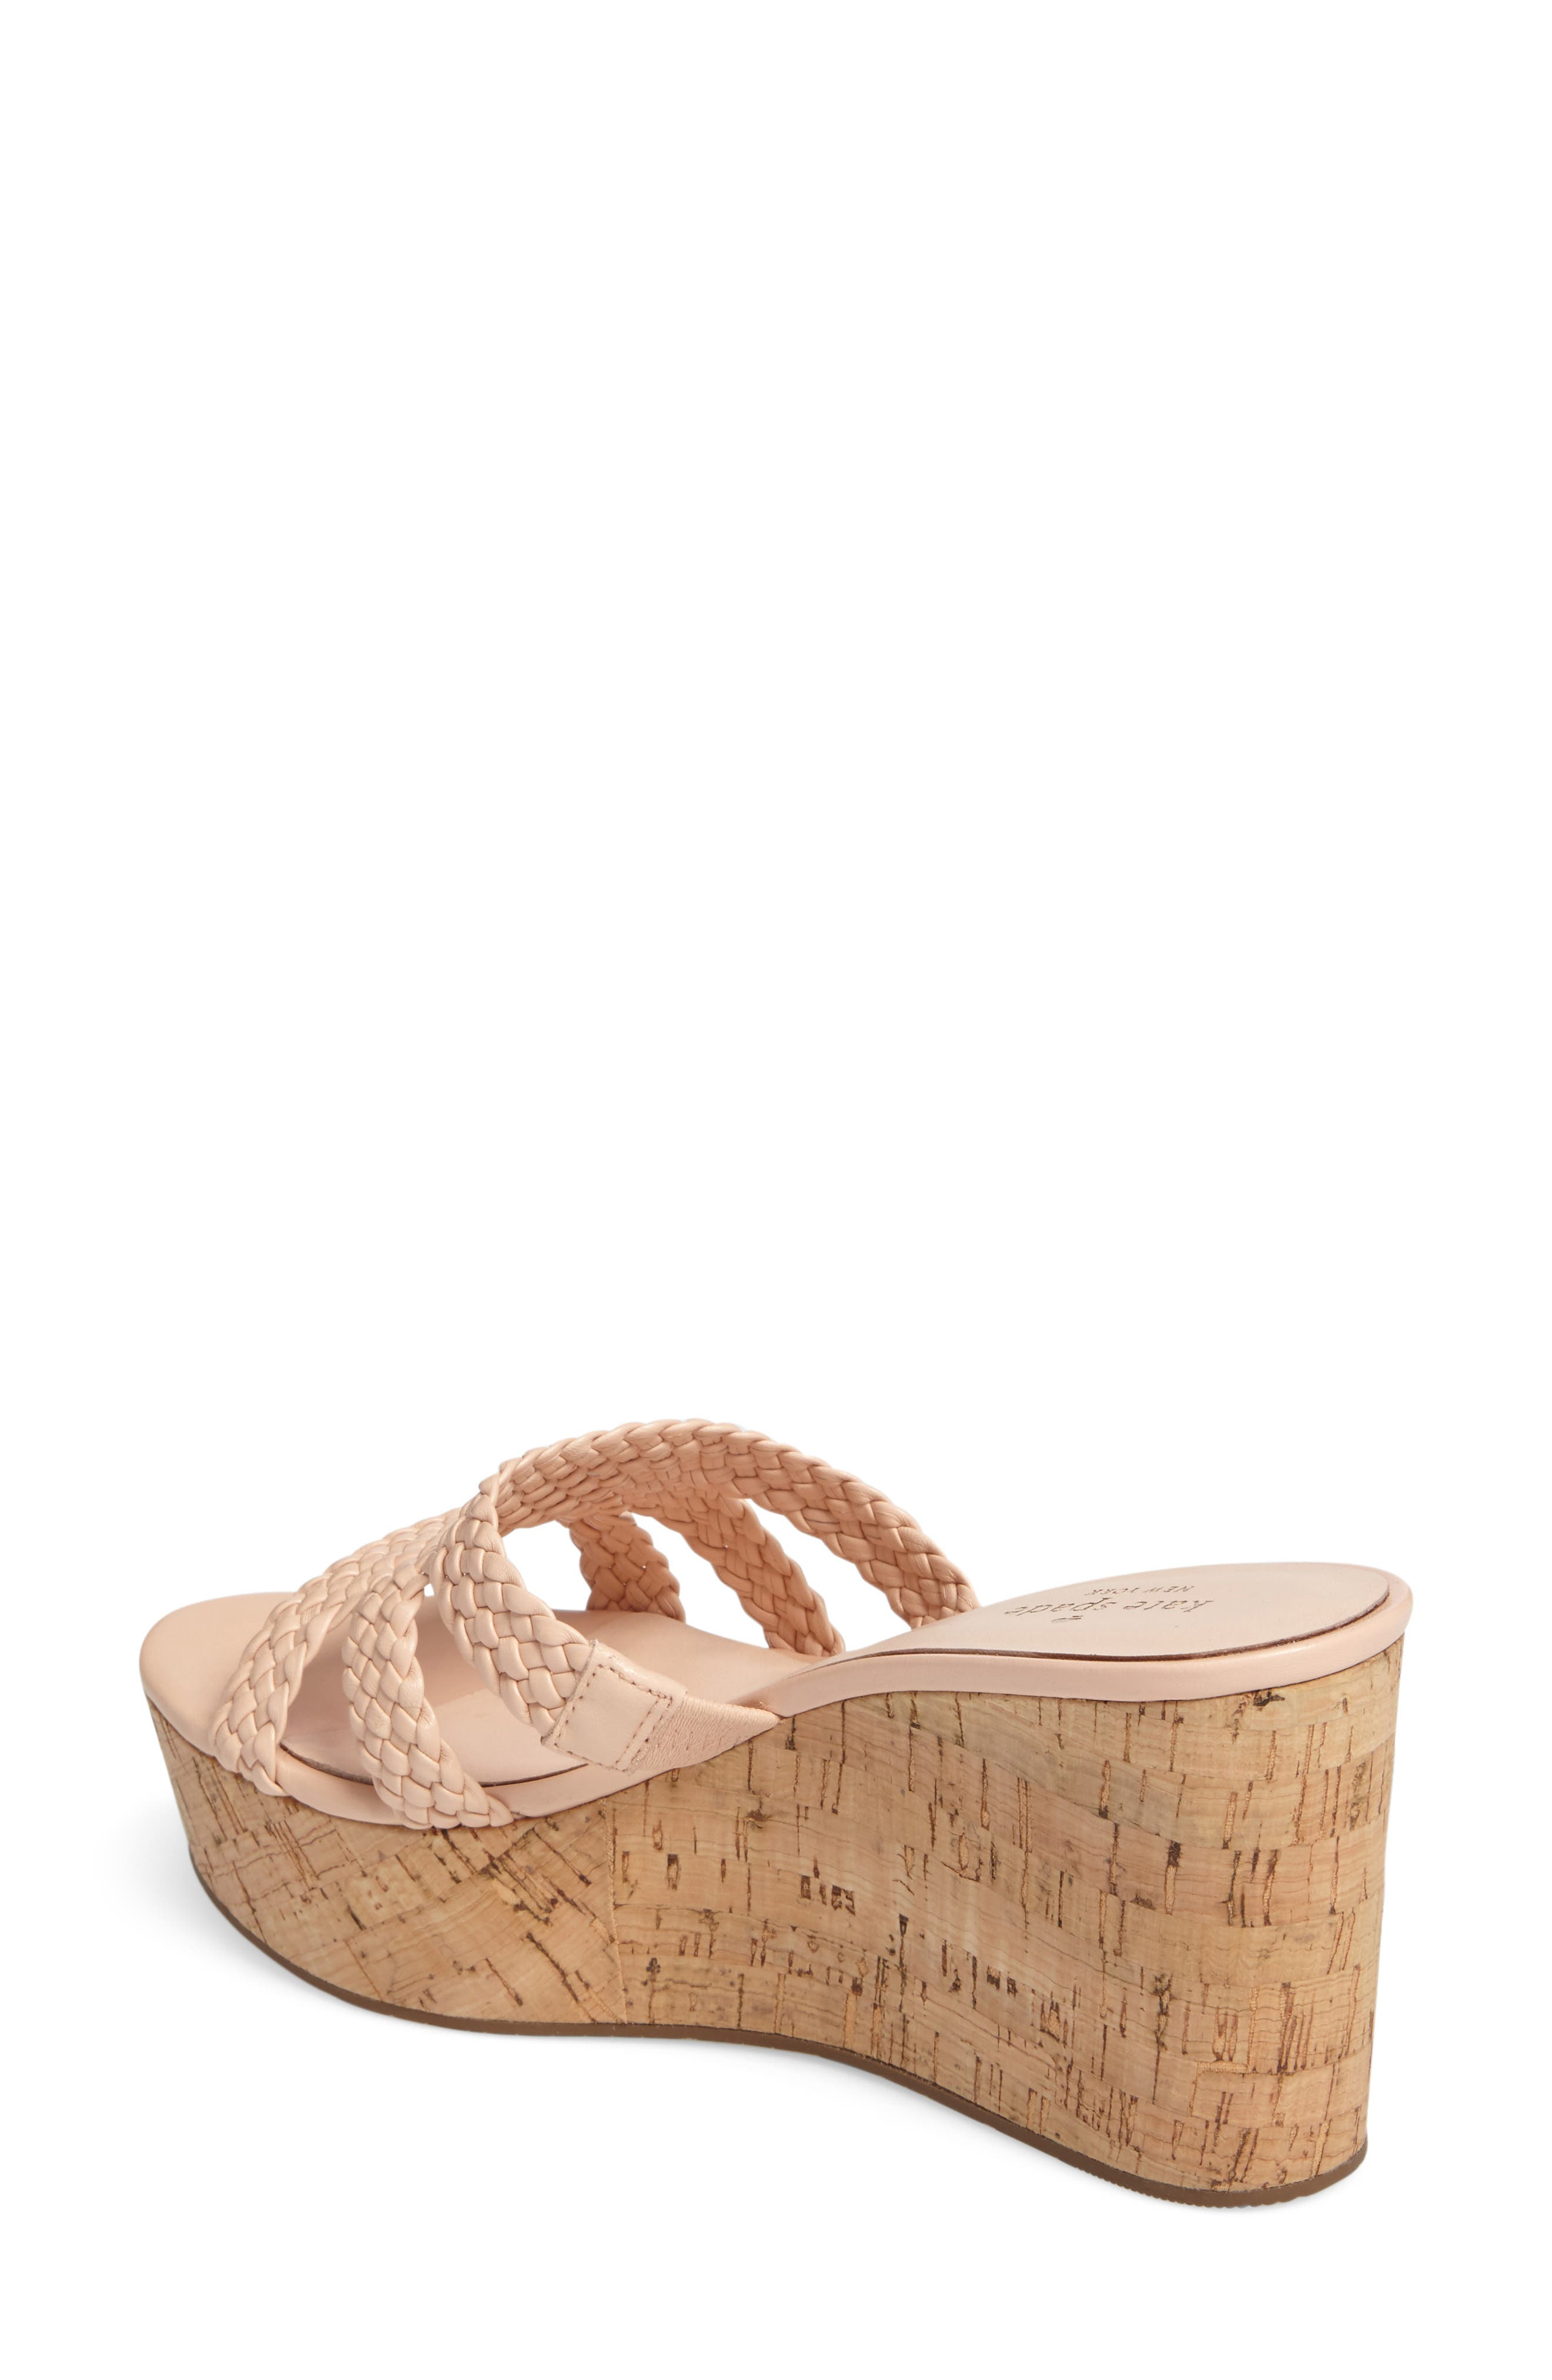 tarvela wedge sandal,                             Alternate thumbnail 2, color,                             661